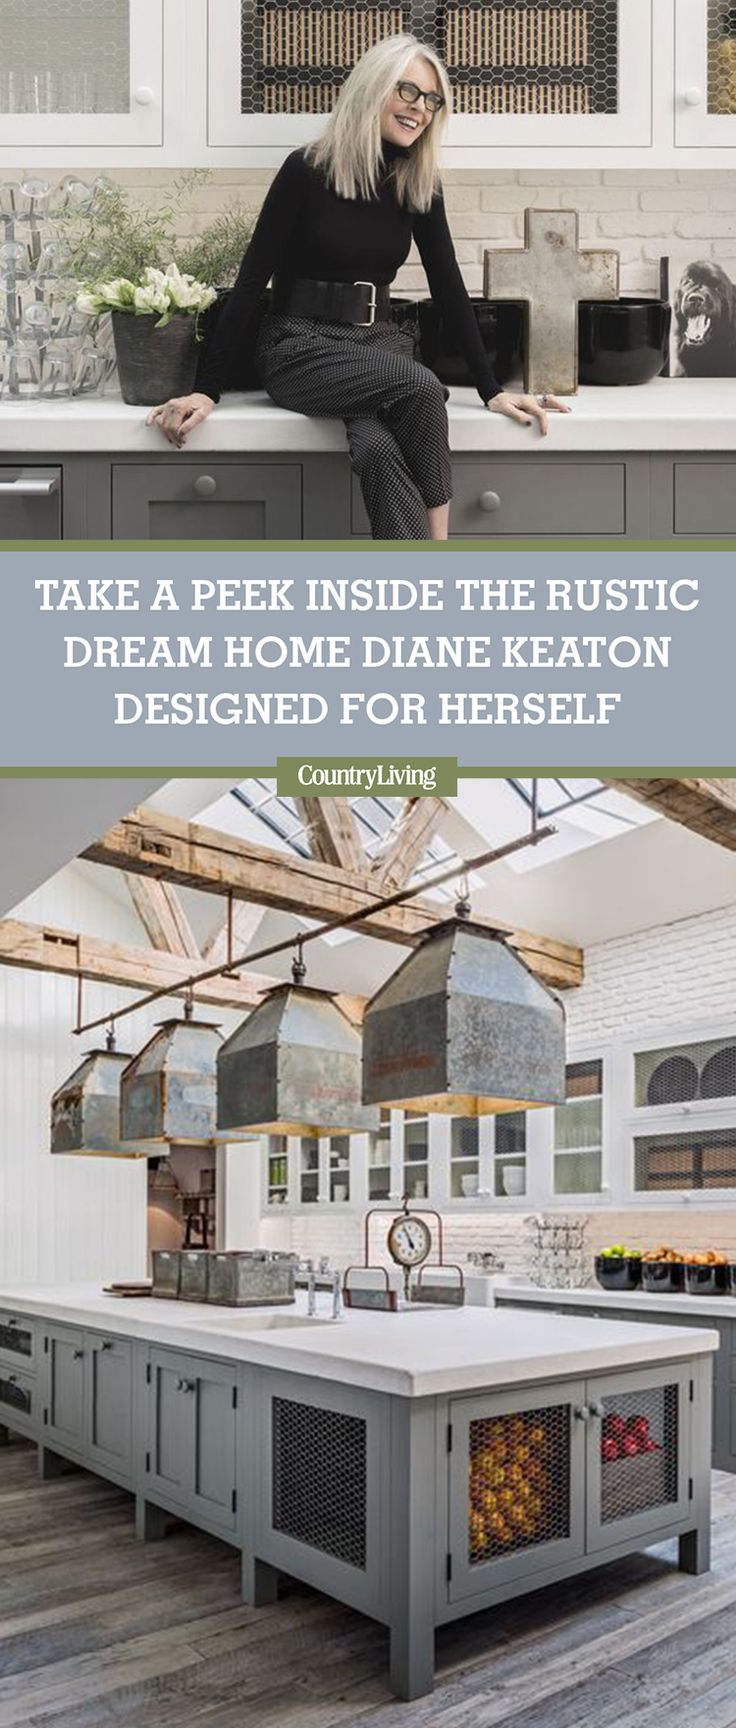 For the past few decades, Academy Award-winning actress Diane Keaton has spent much of her free time off set on a series of construction sites flipping houses. Yes, the Hollywood star loves to get her hands dirty and transform crumbly structures into dreamy homes. Click to see inside her home that Pinterest inspired. #goals